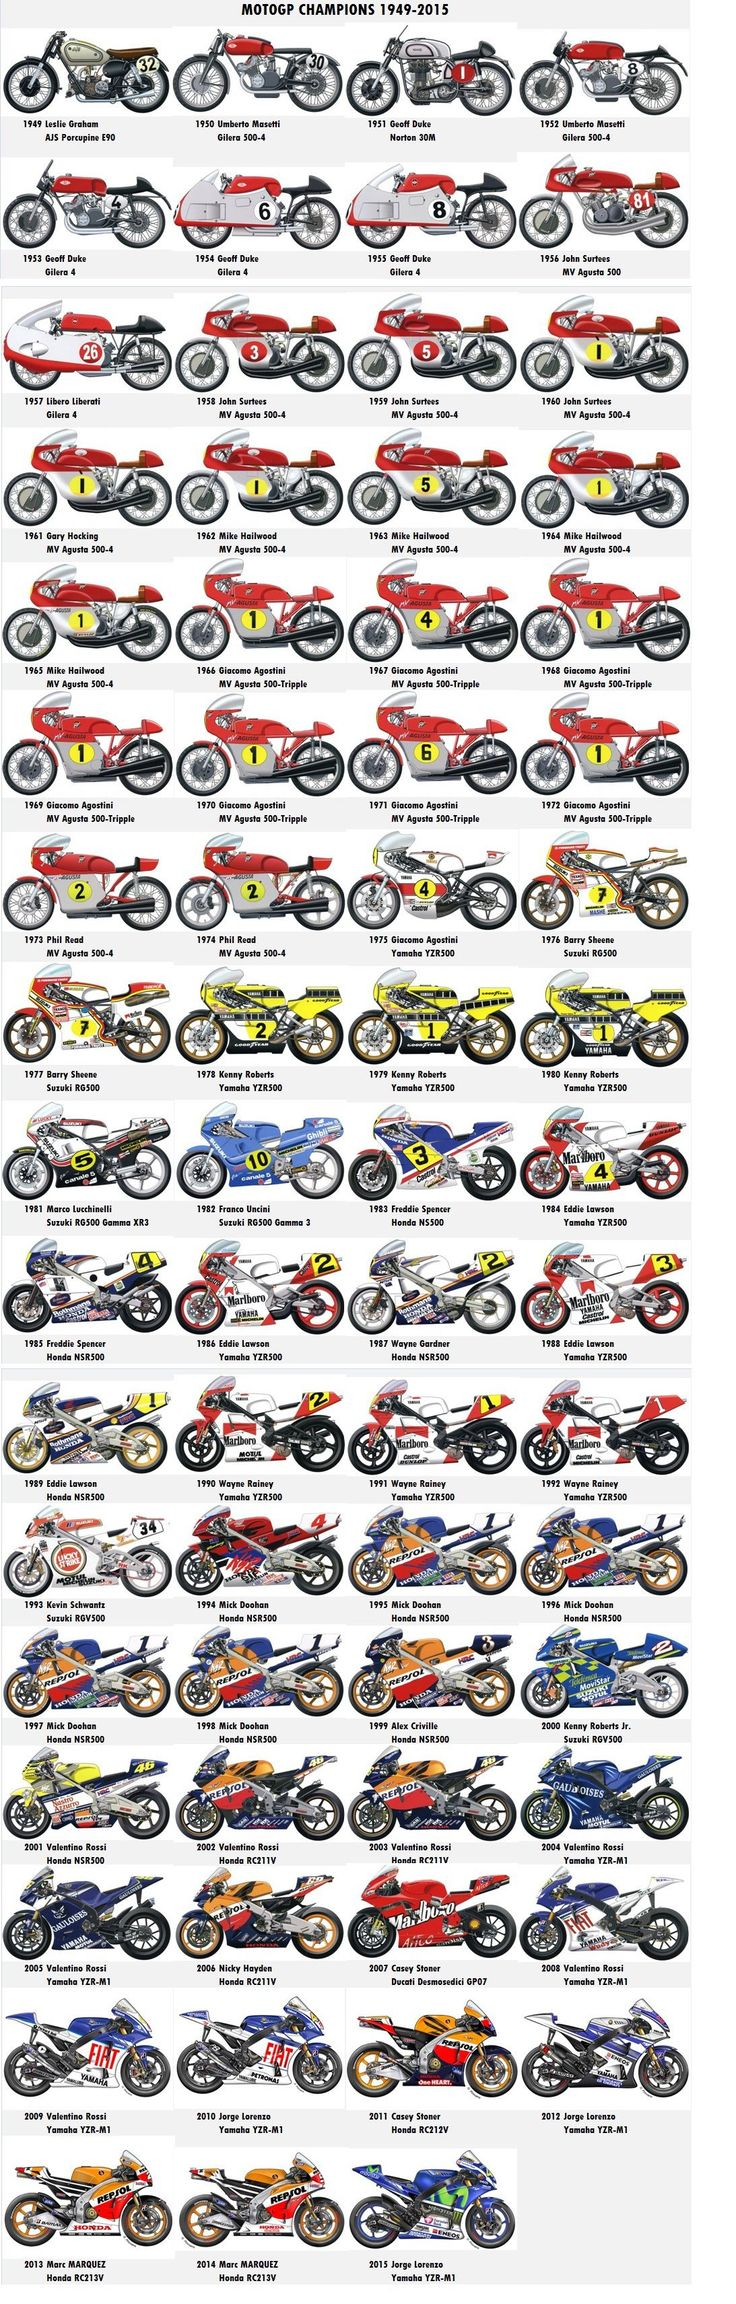 MotoGP World Champions